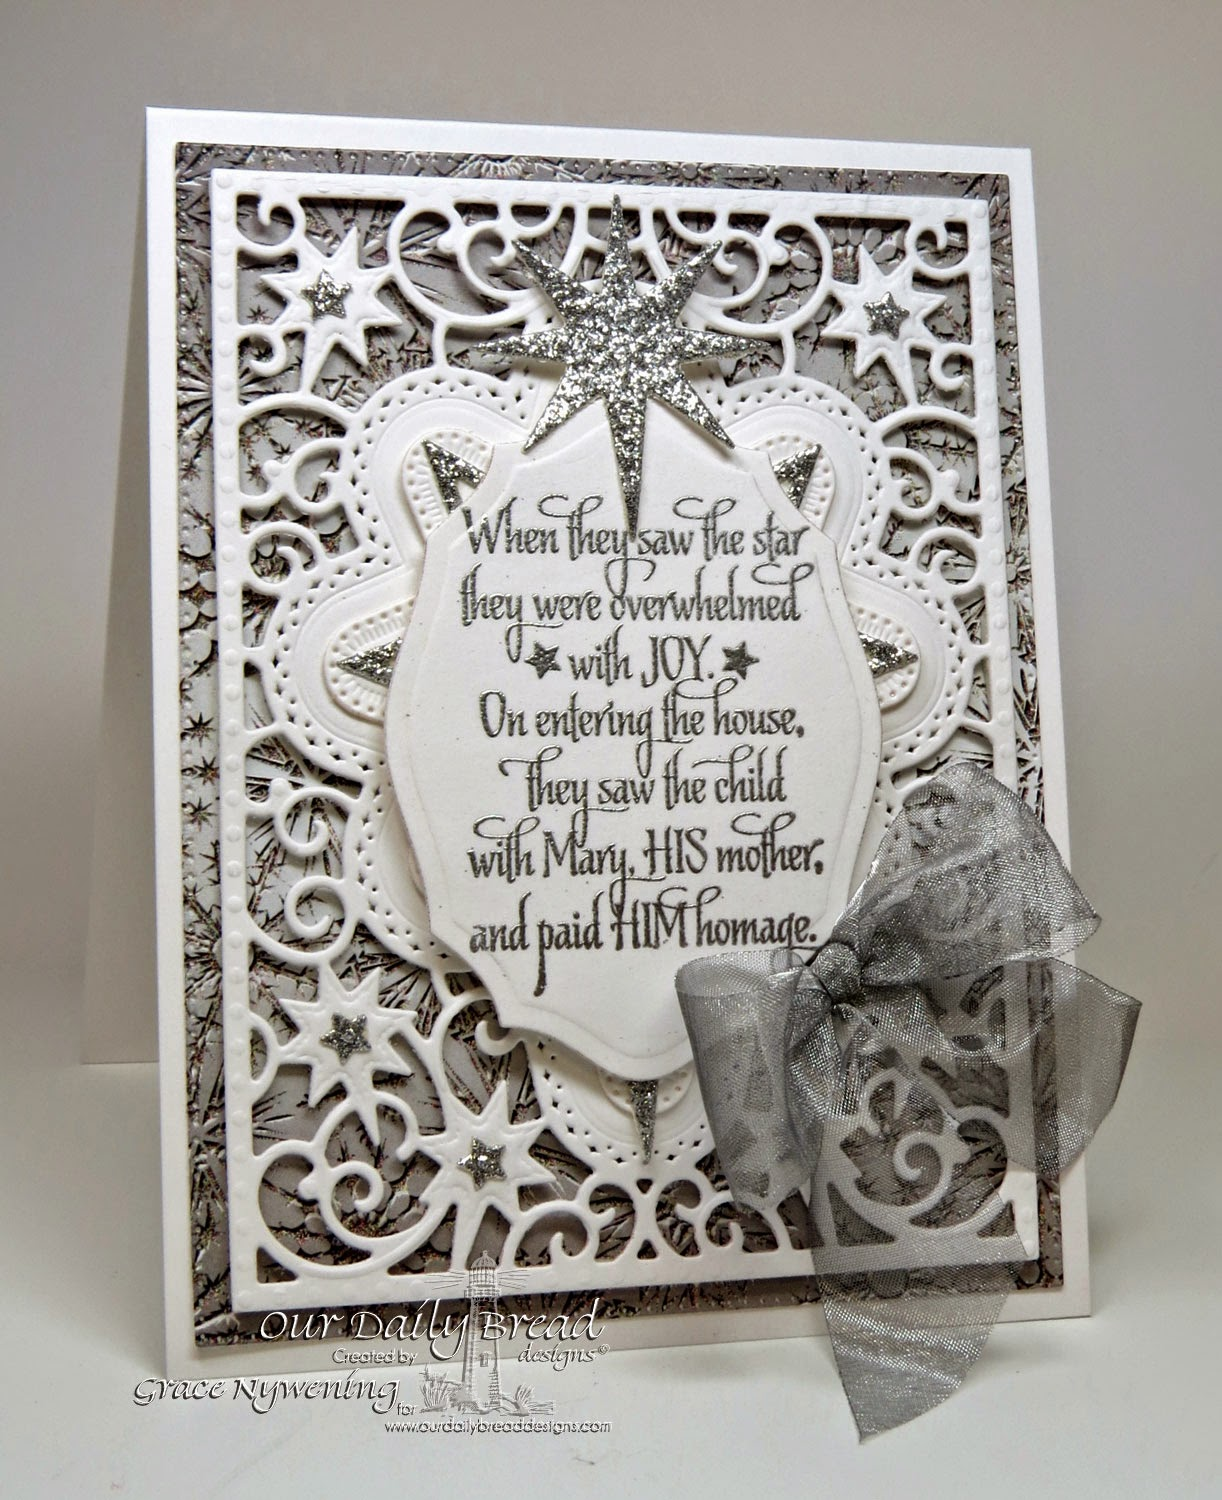 ODBD stamps Come Let us adore Him designed by Grace Nywening